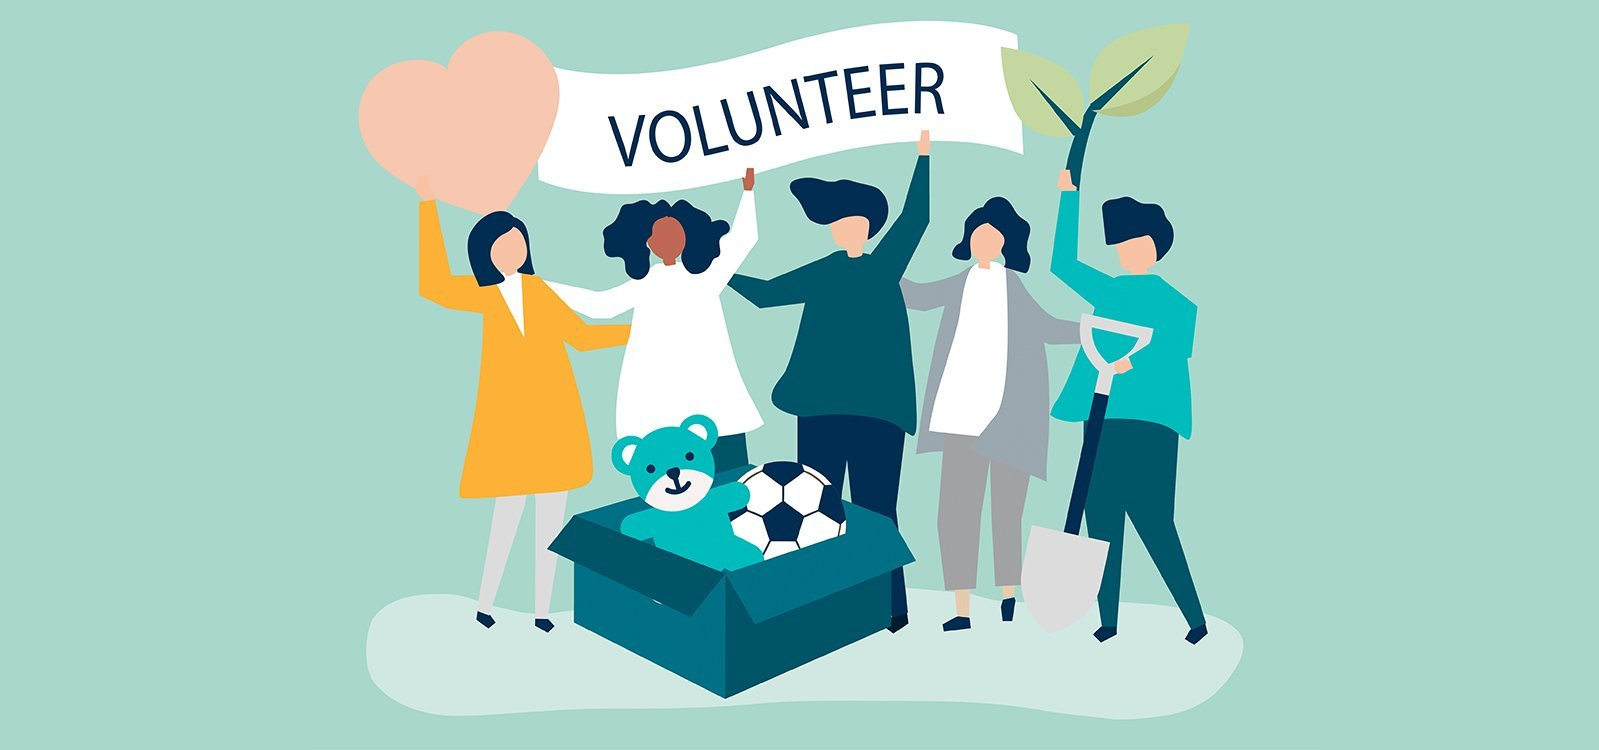 THE ART OF VOLUNTEERING